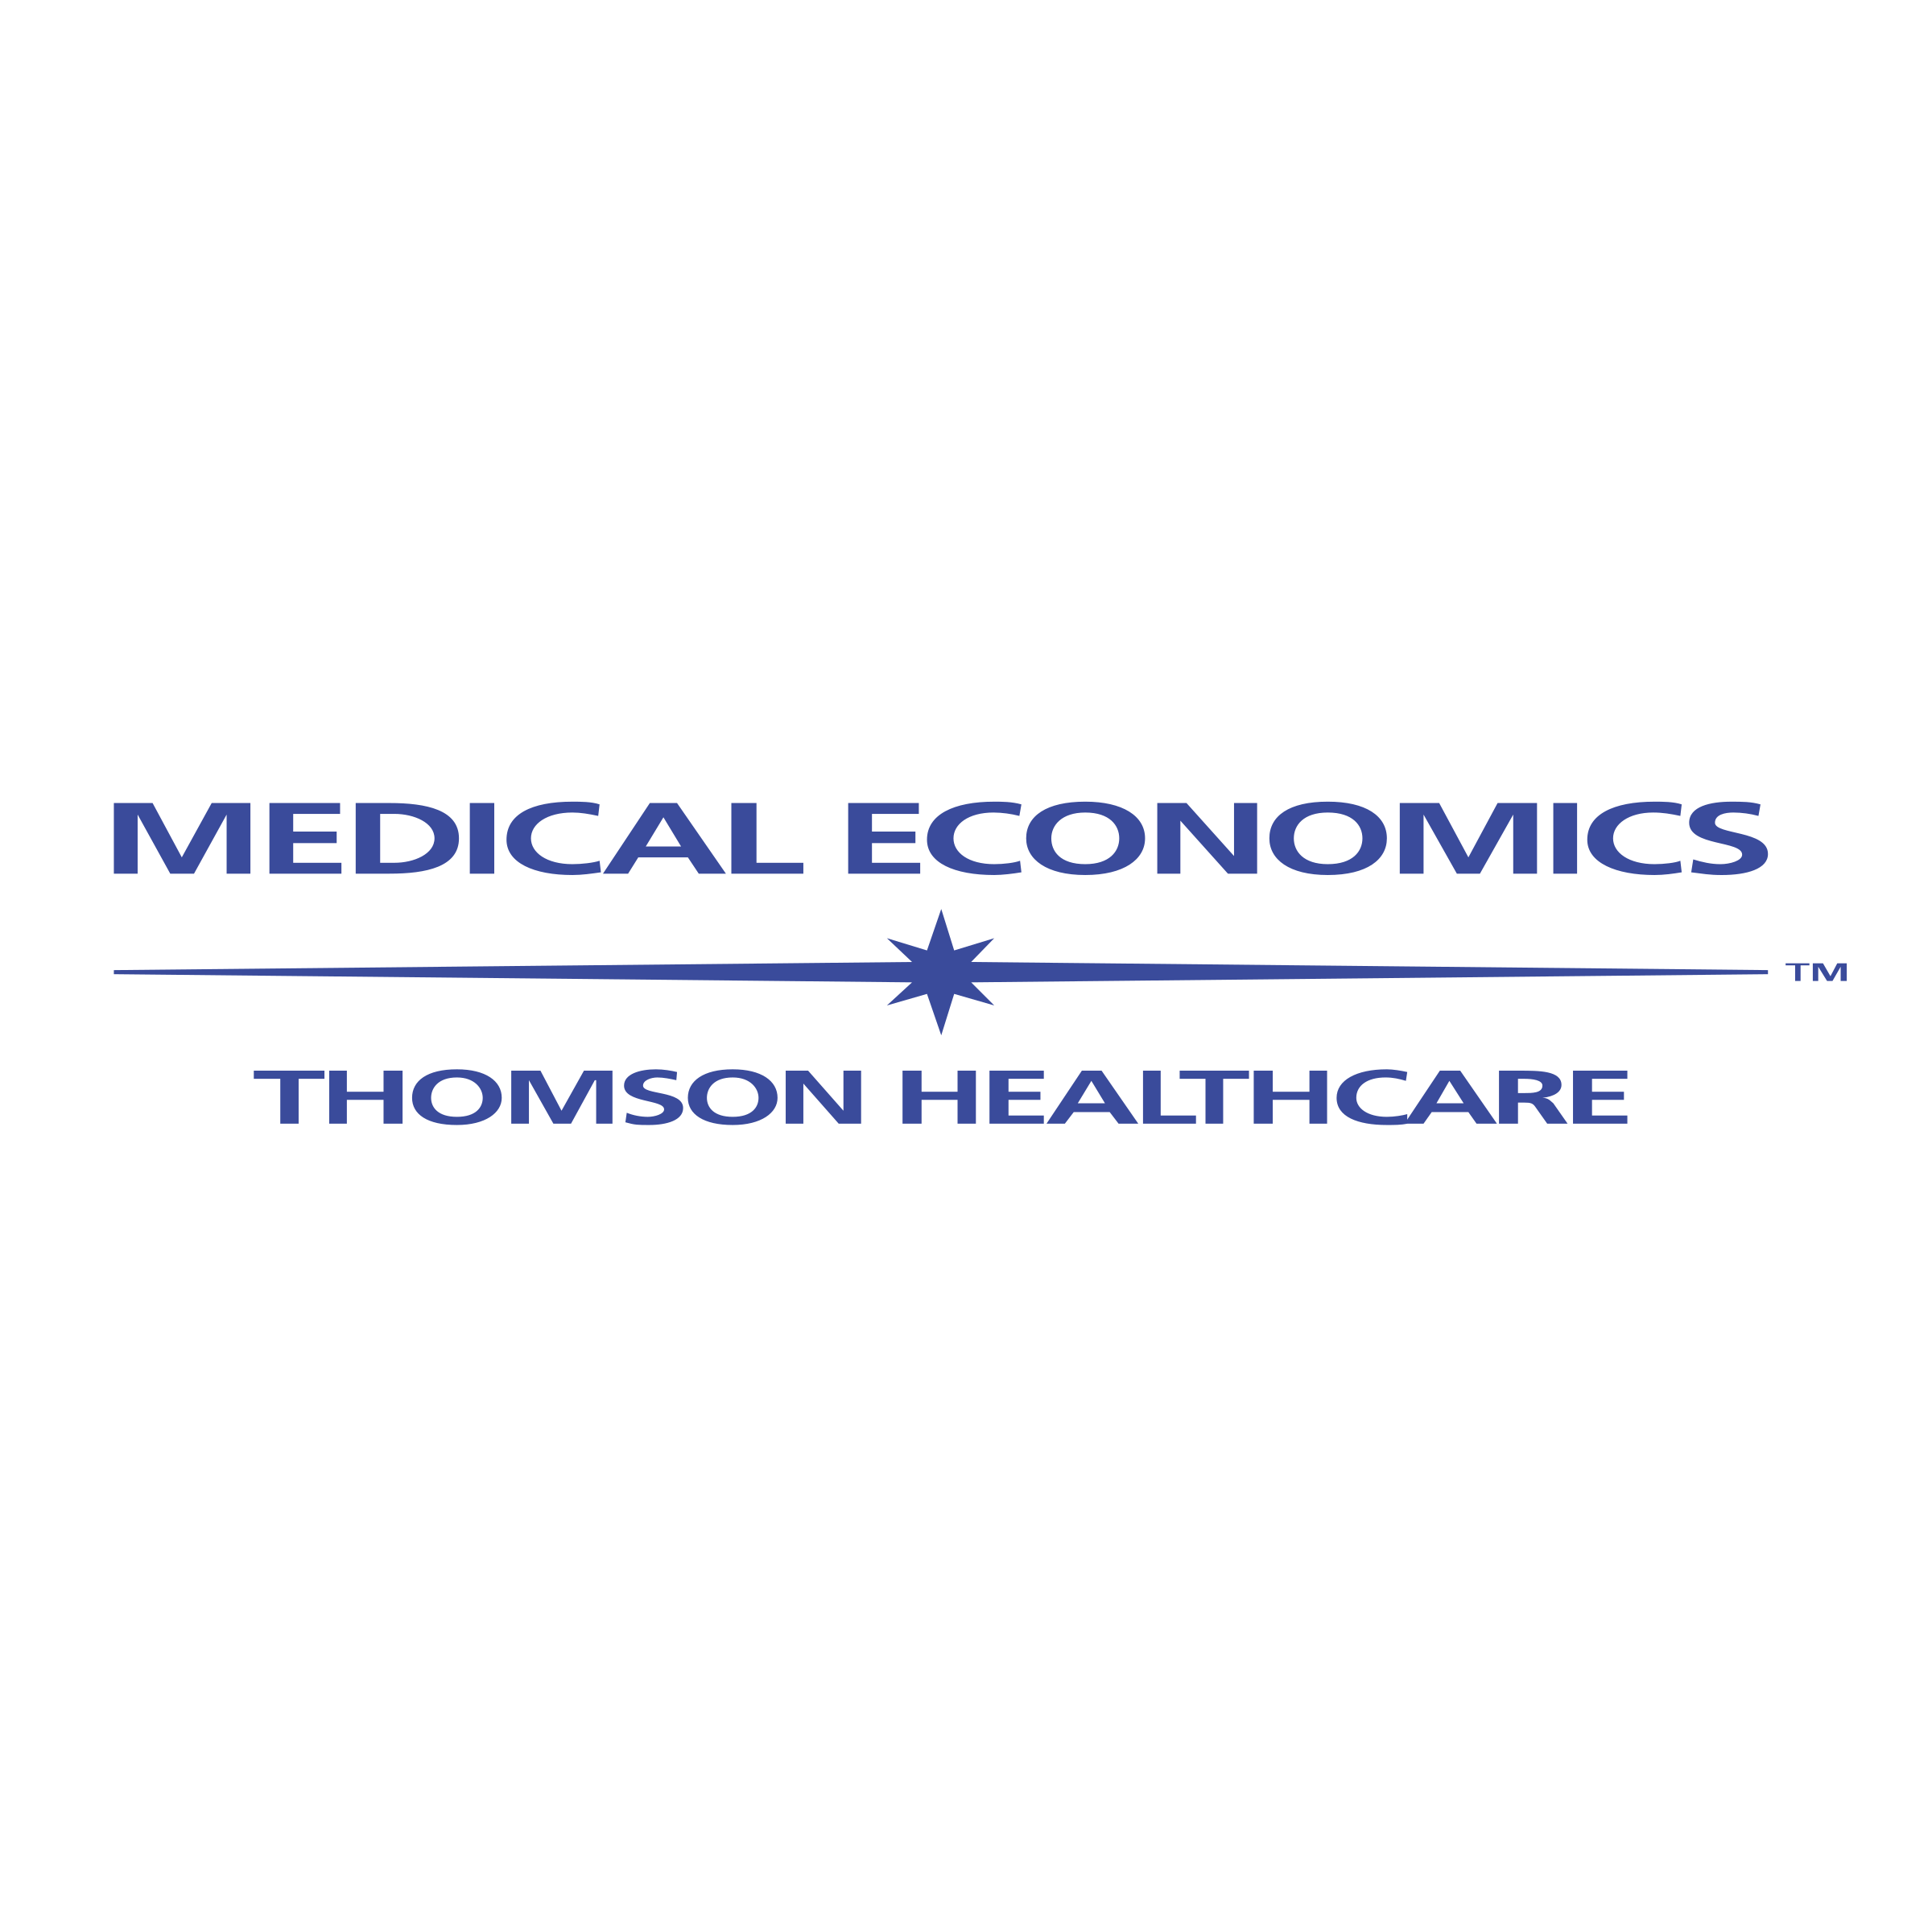 Mdn svg vector. Medical economics logo png